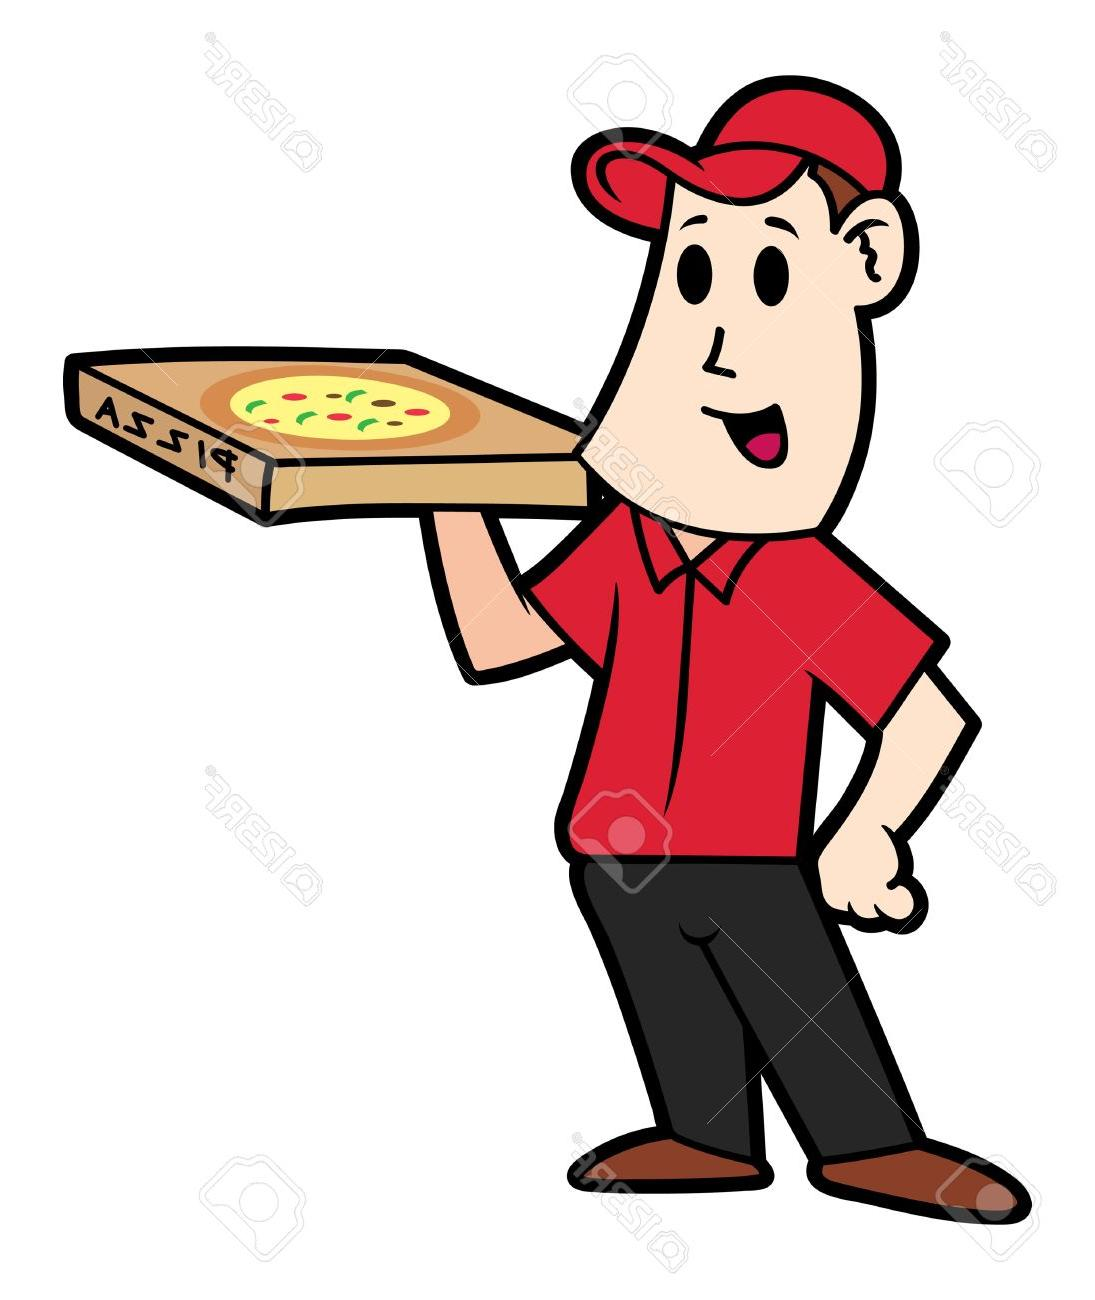 1095x1300 Best 15 Man Cartoon Clipartfest Pizza Delivery Clipart Library